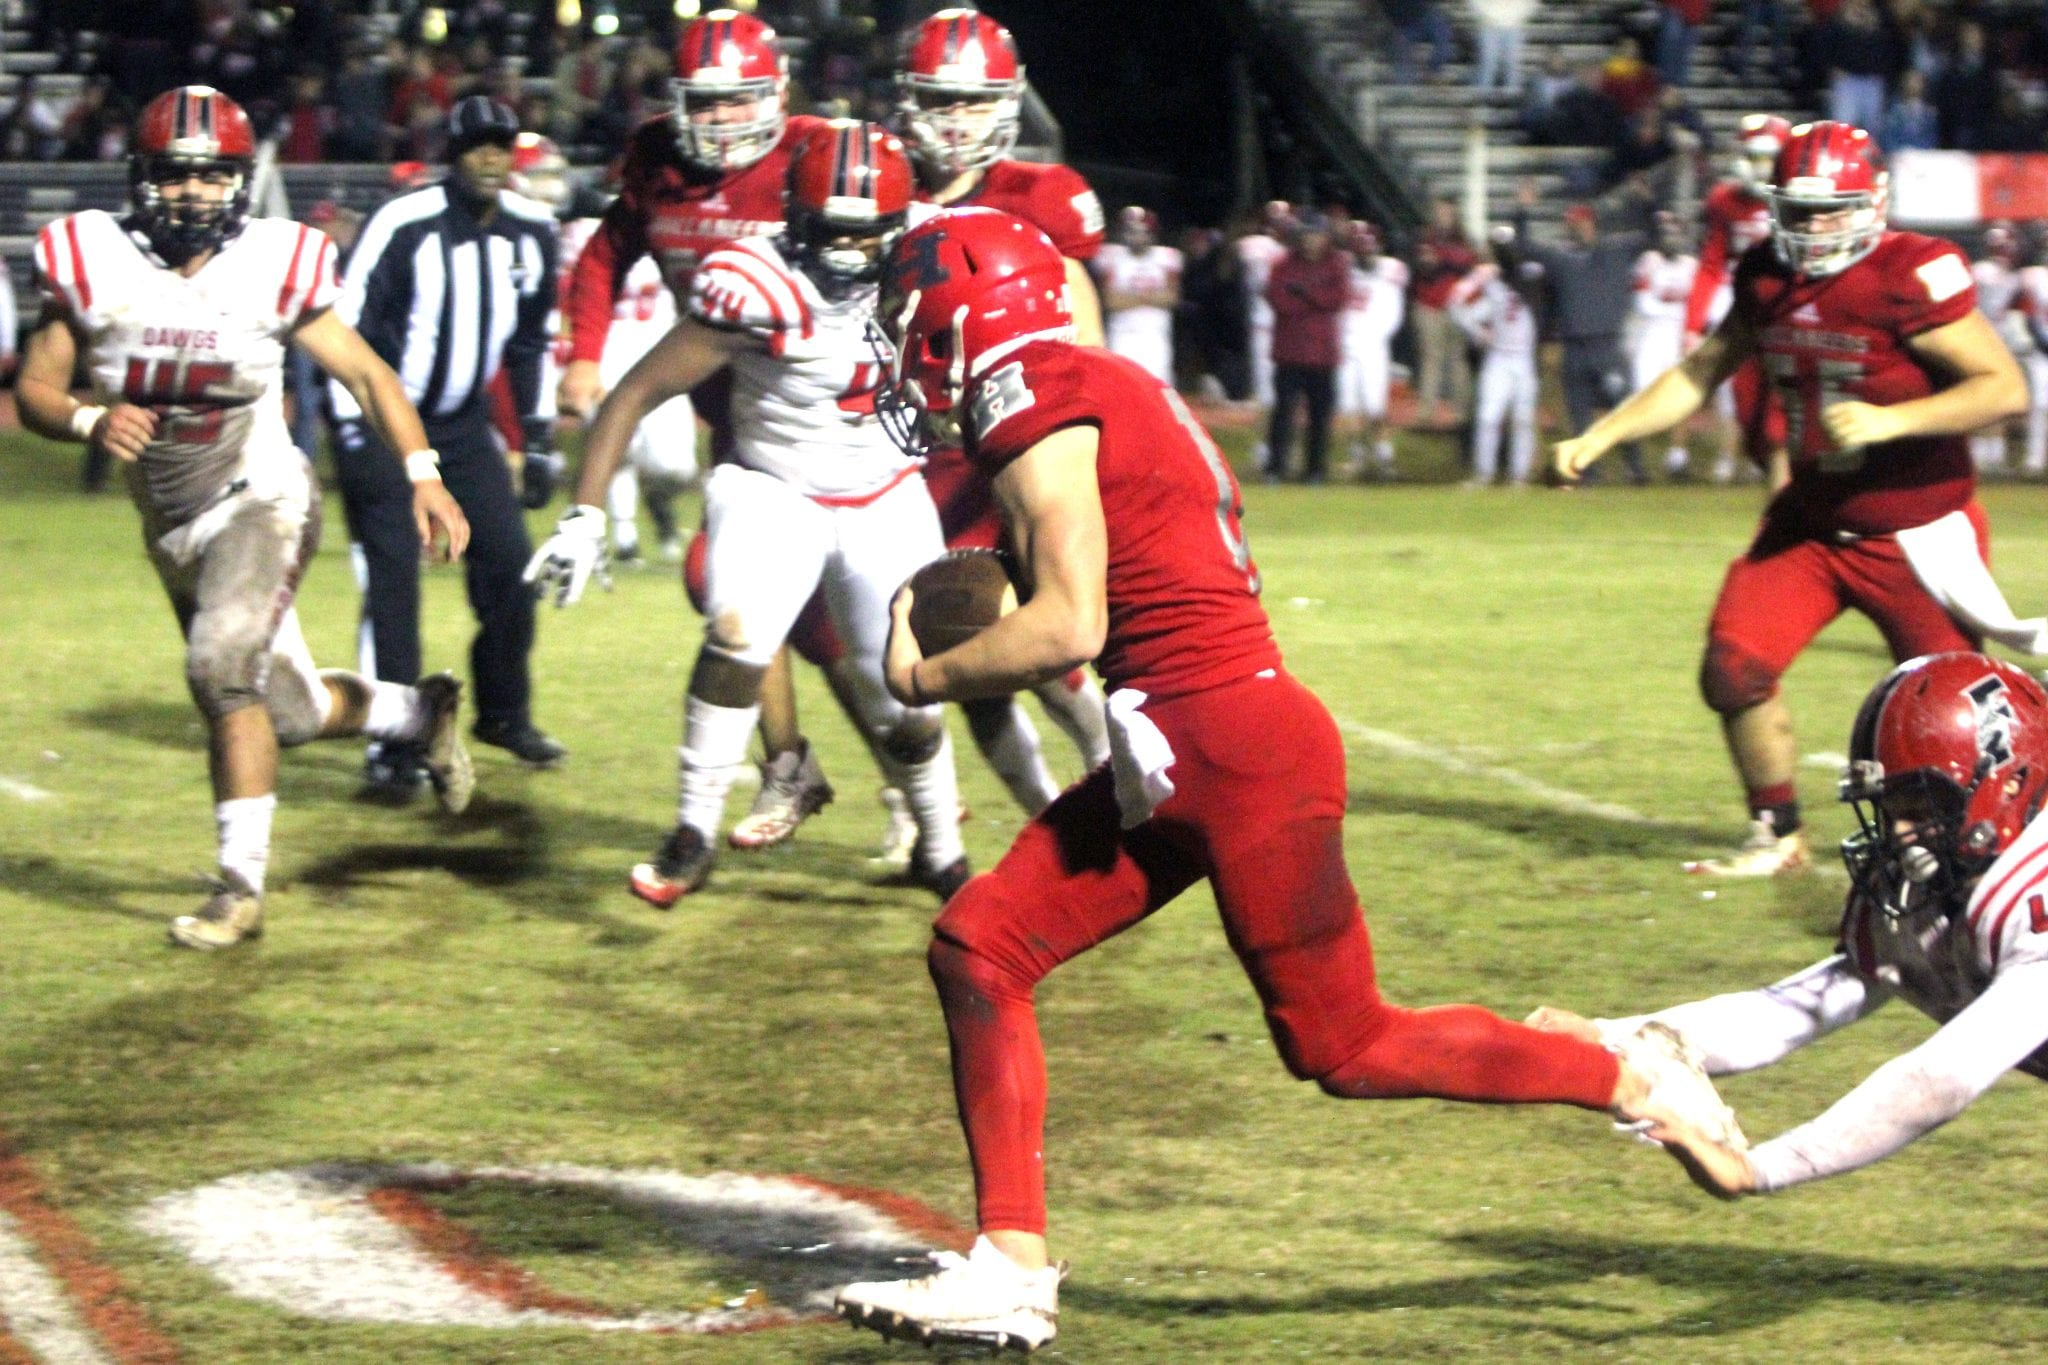 High School Football Mcwilliams Sweeney Lead Haughton To Victory